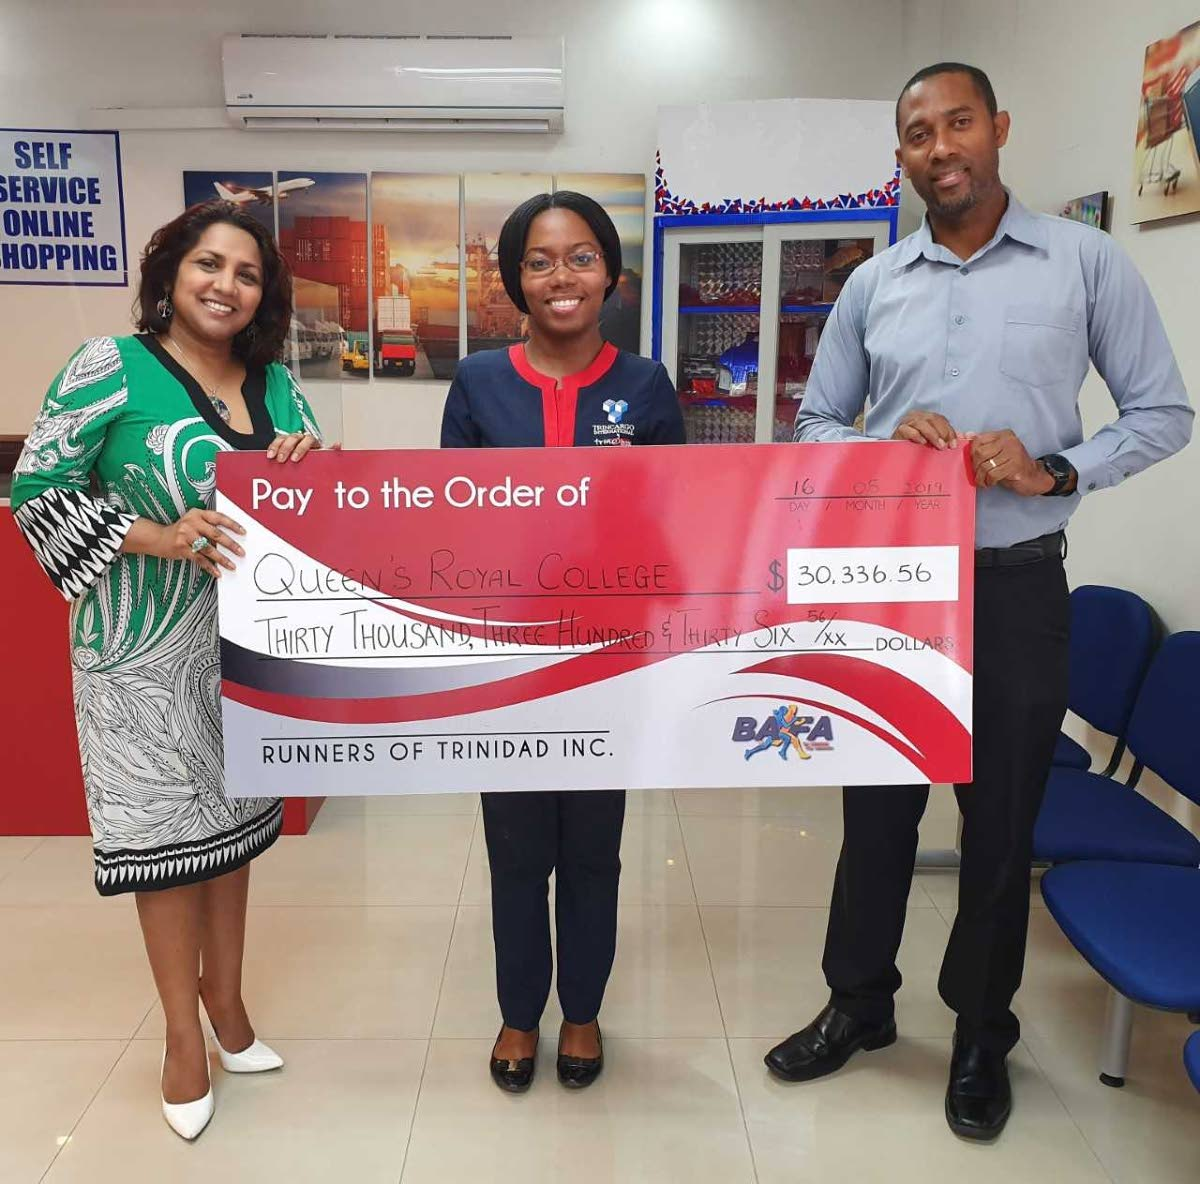 Doctor Safeeya Mohammed of Sisu Global Wellness, left, Victoria Sealey of Trinebox, middle, and Nigel Bellamy of Bafasports with the cheque that was presented to QRC.